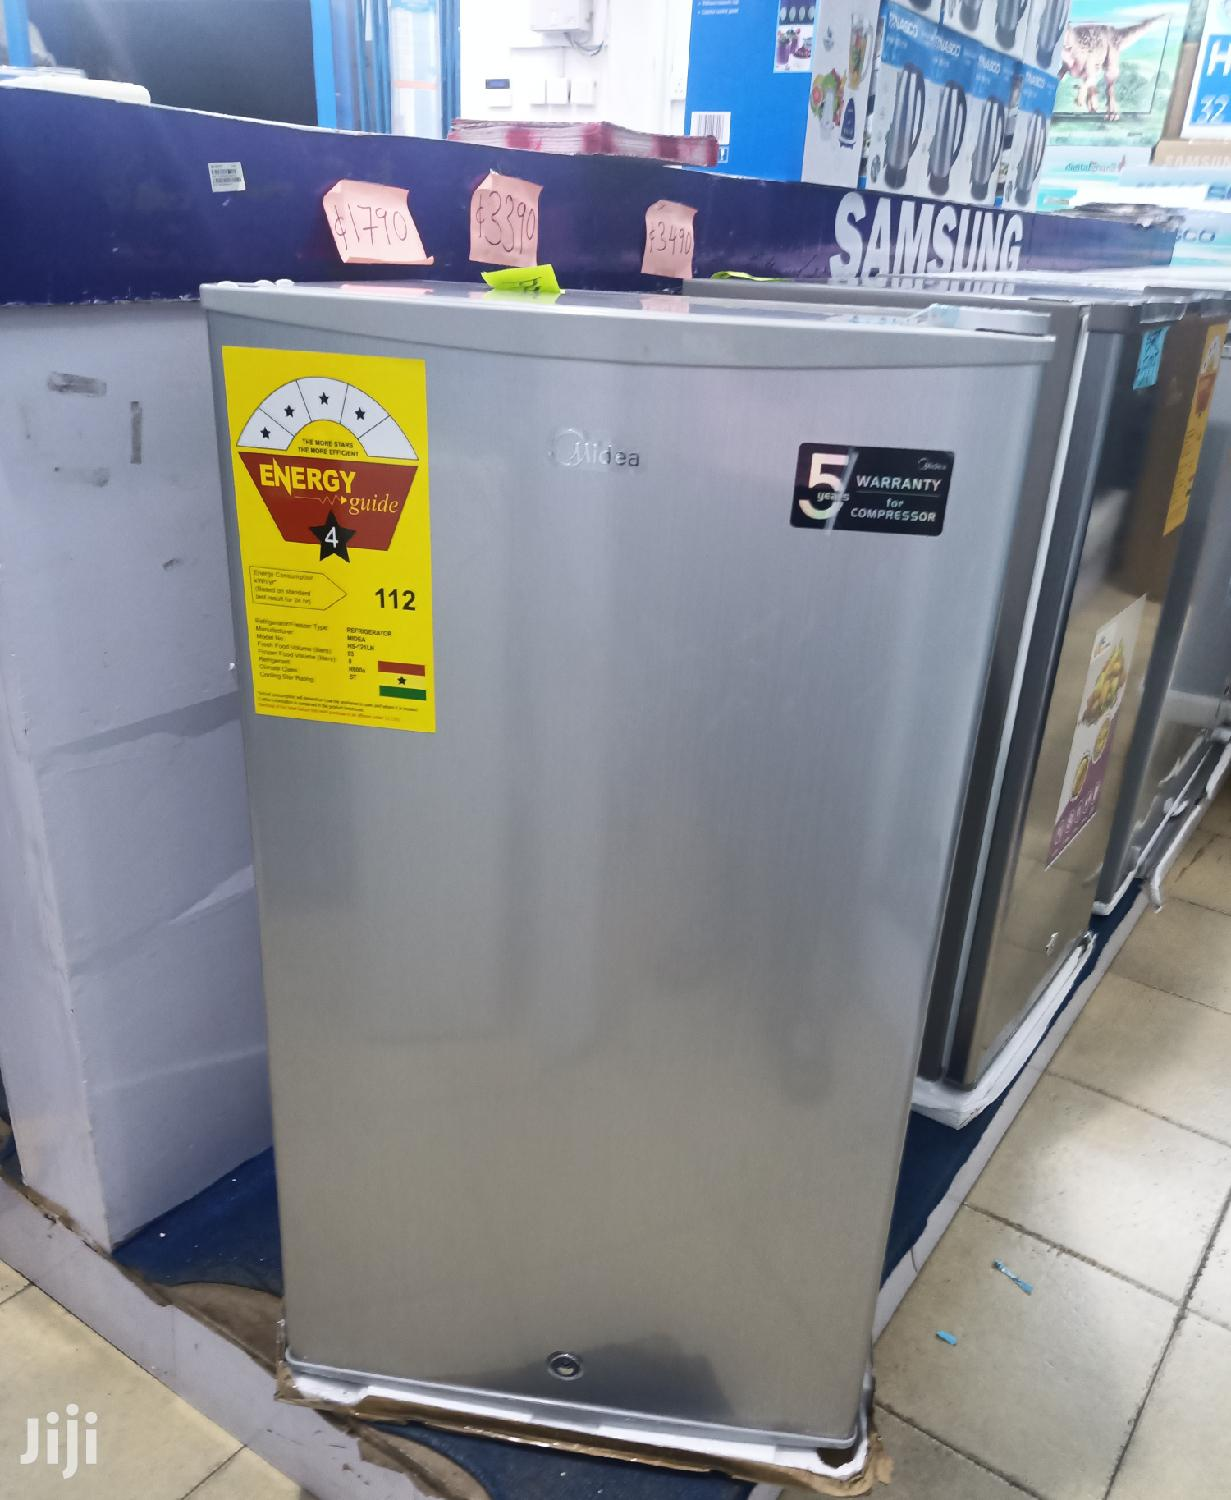 Midea Table Top Refrigerator -Hs121l | Kitchen Appliances for sale in Accra Metropolitan, Greater Accra, Ghana